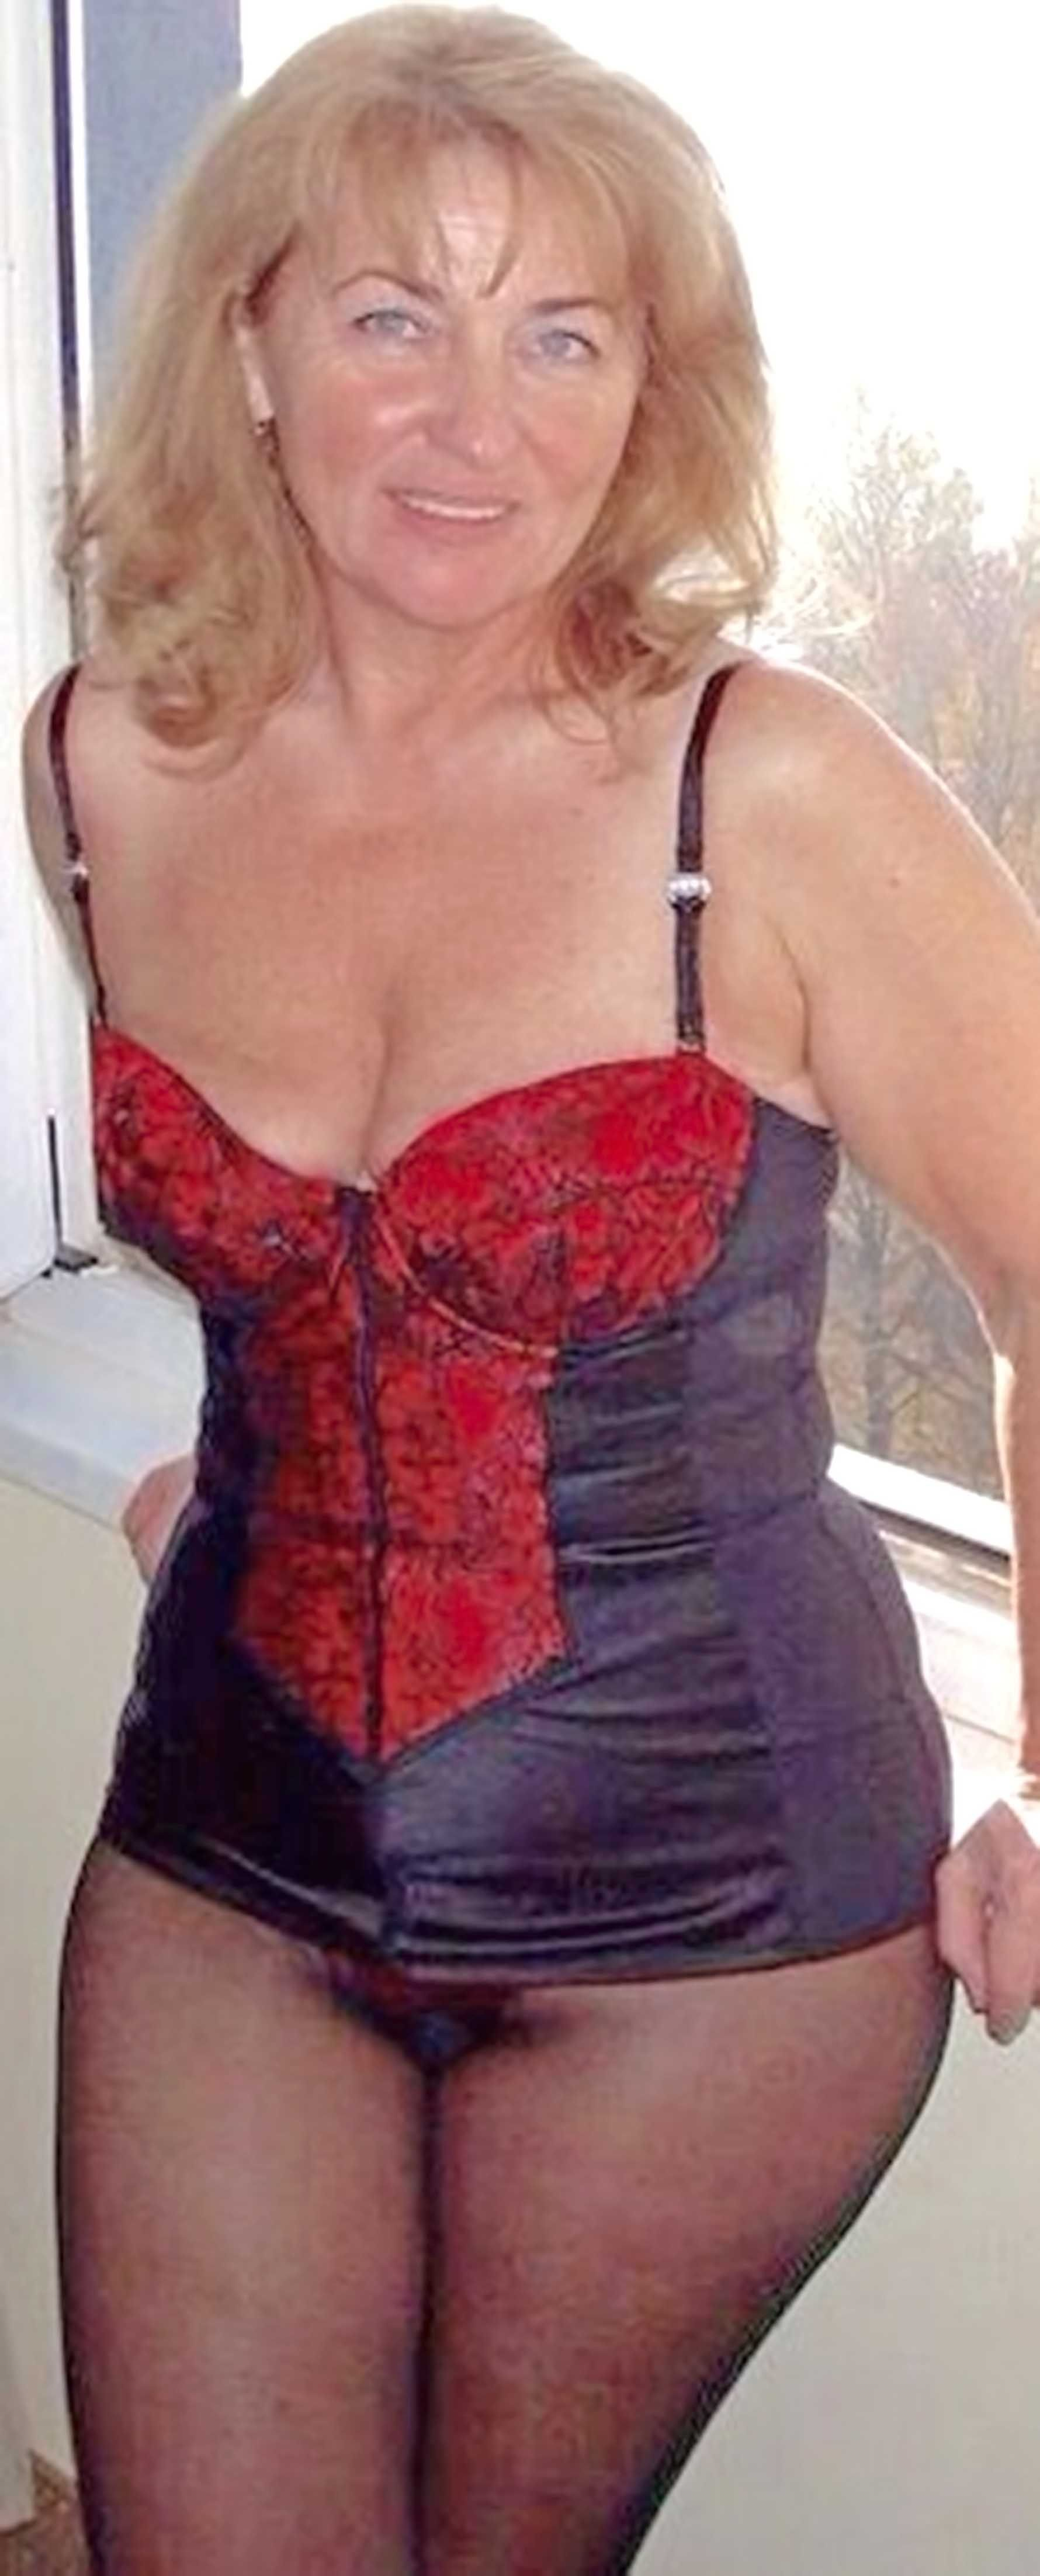 Mature Escort Women 74